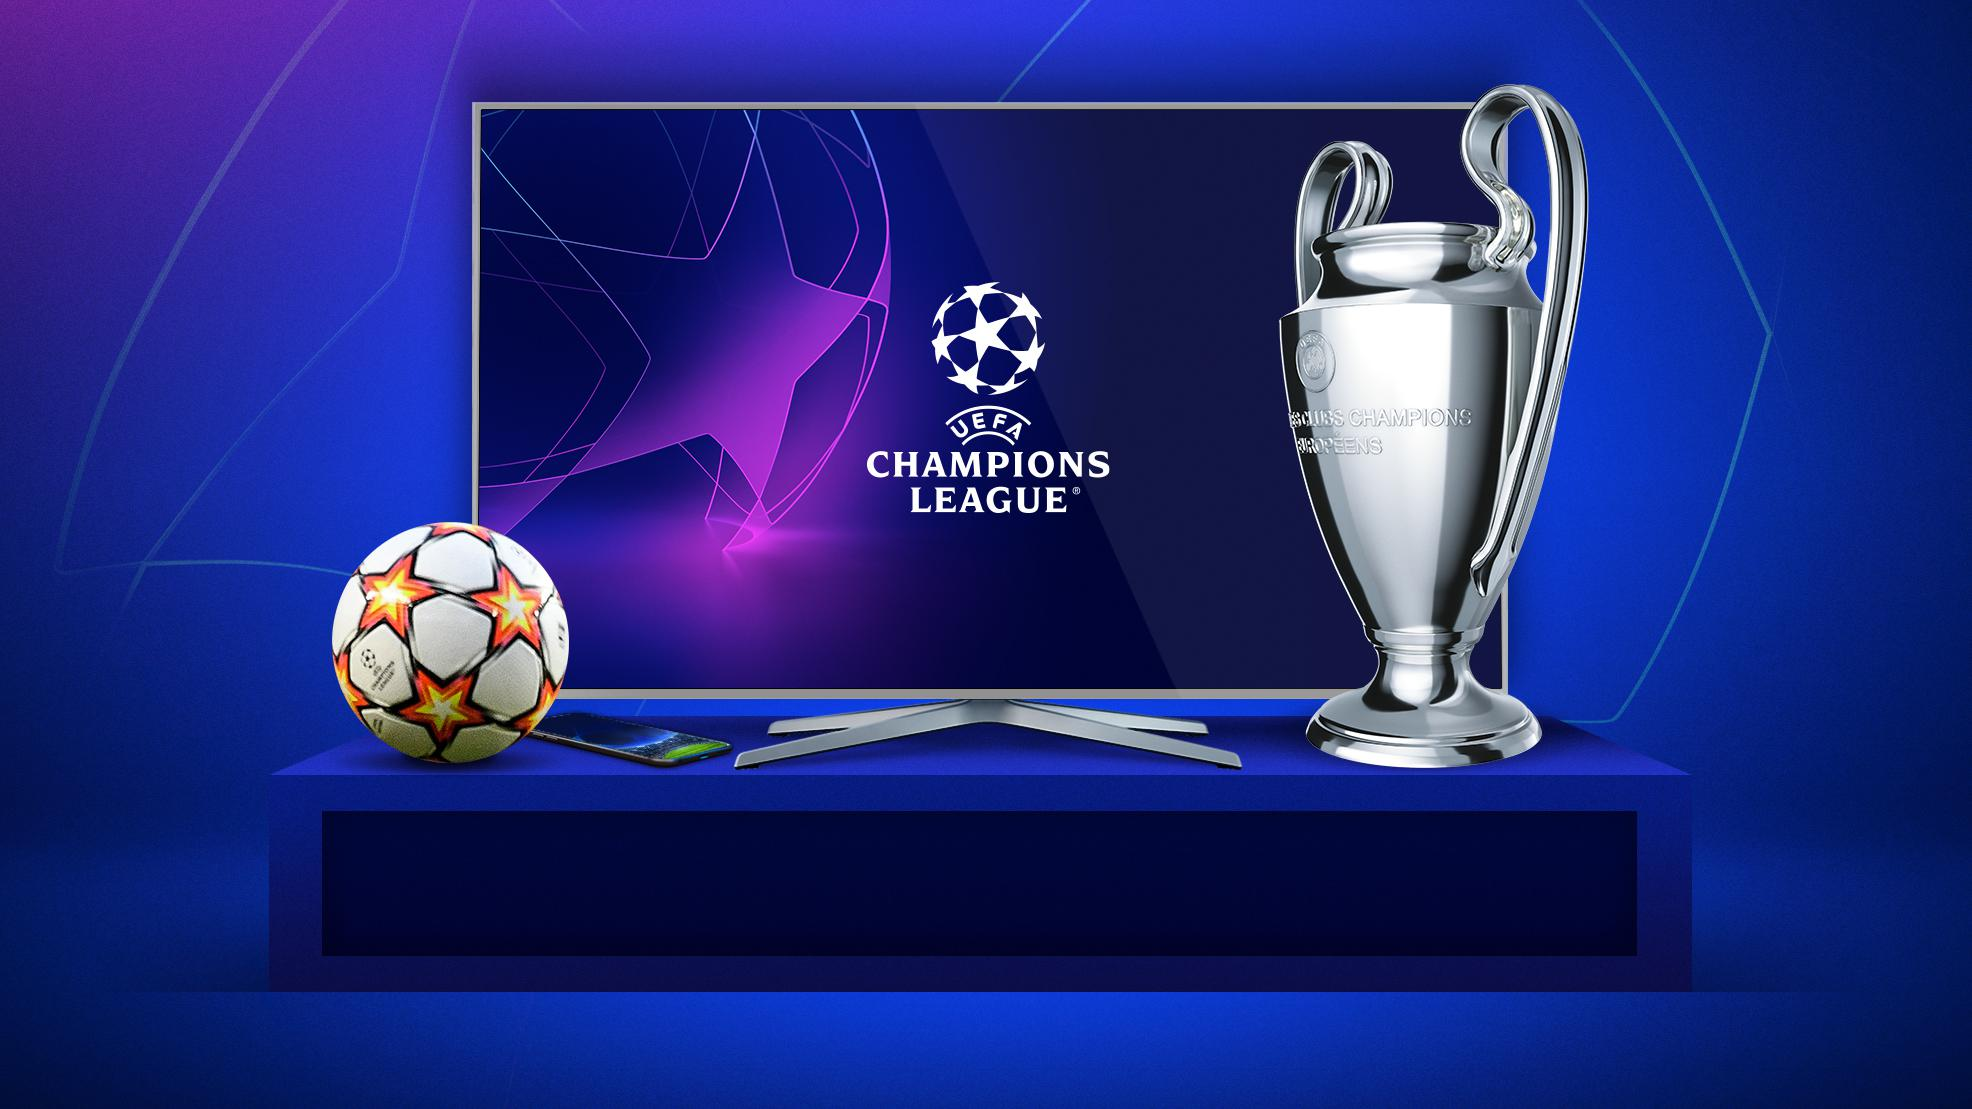 Where to watch the UEFA Champions League: TV broadcast partners, live streams